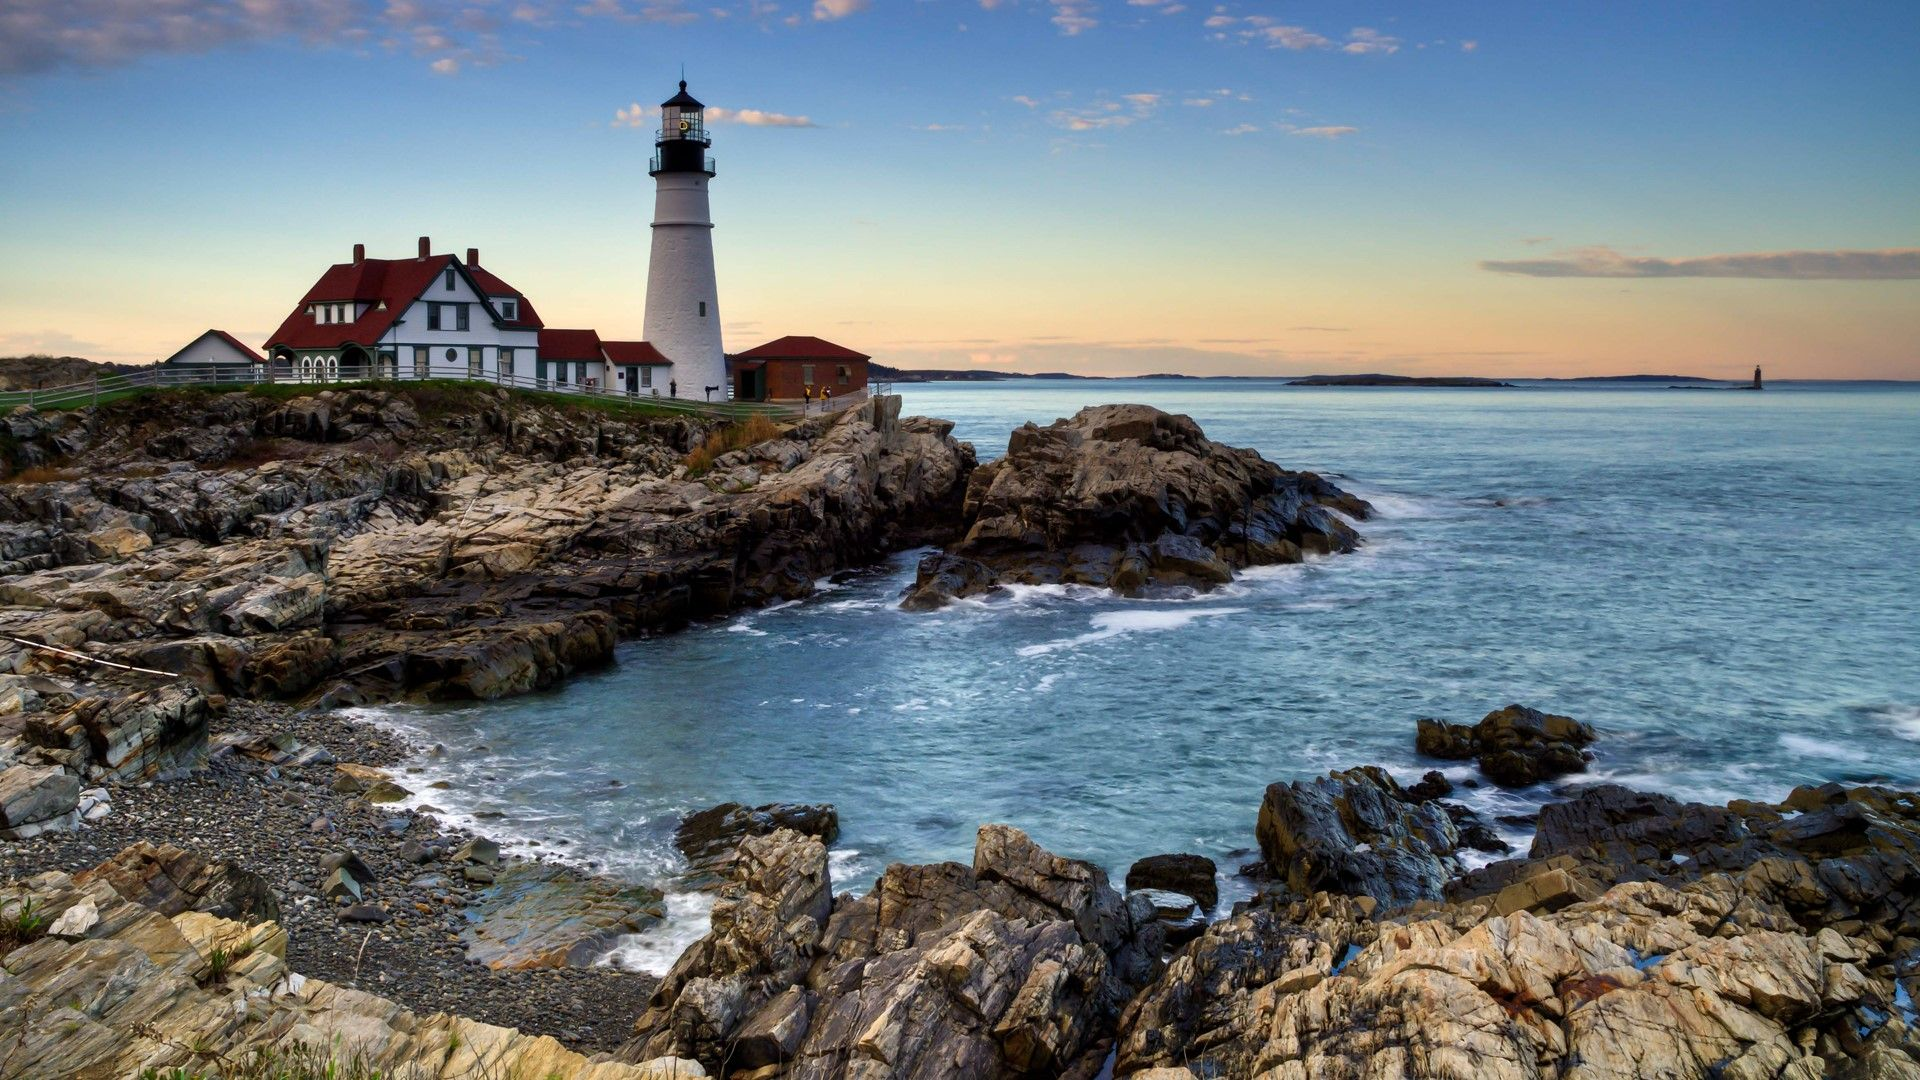 Portland Head lighthouse at sunset, Cape Elizabeth, Maine. [Desktop wallpaper 1920x1080]